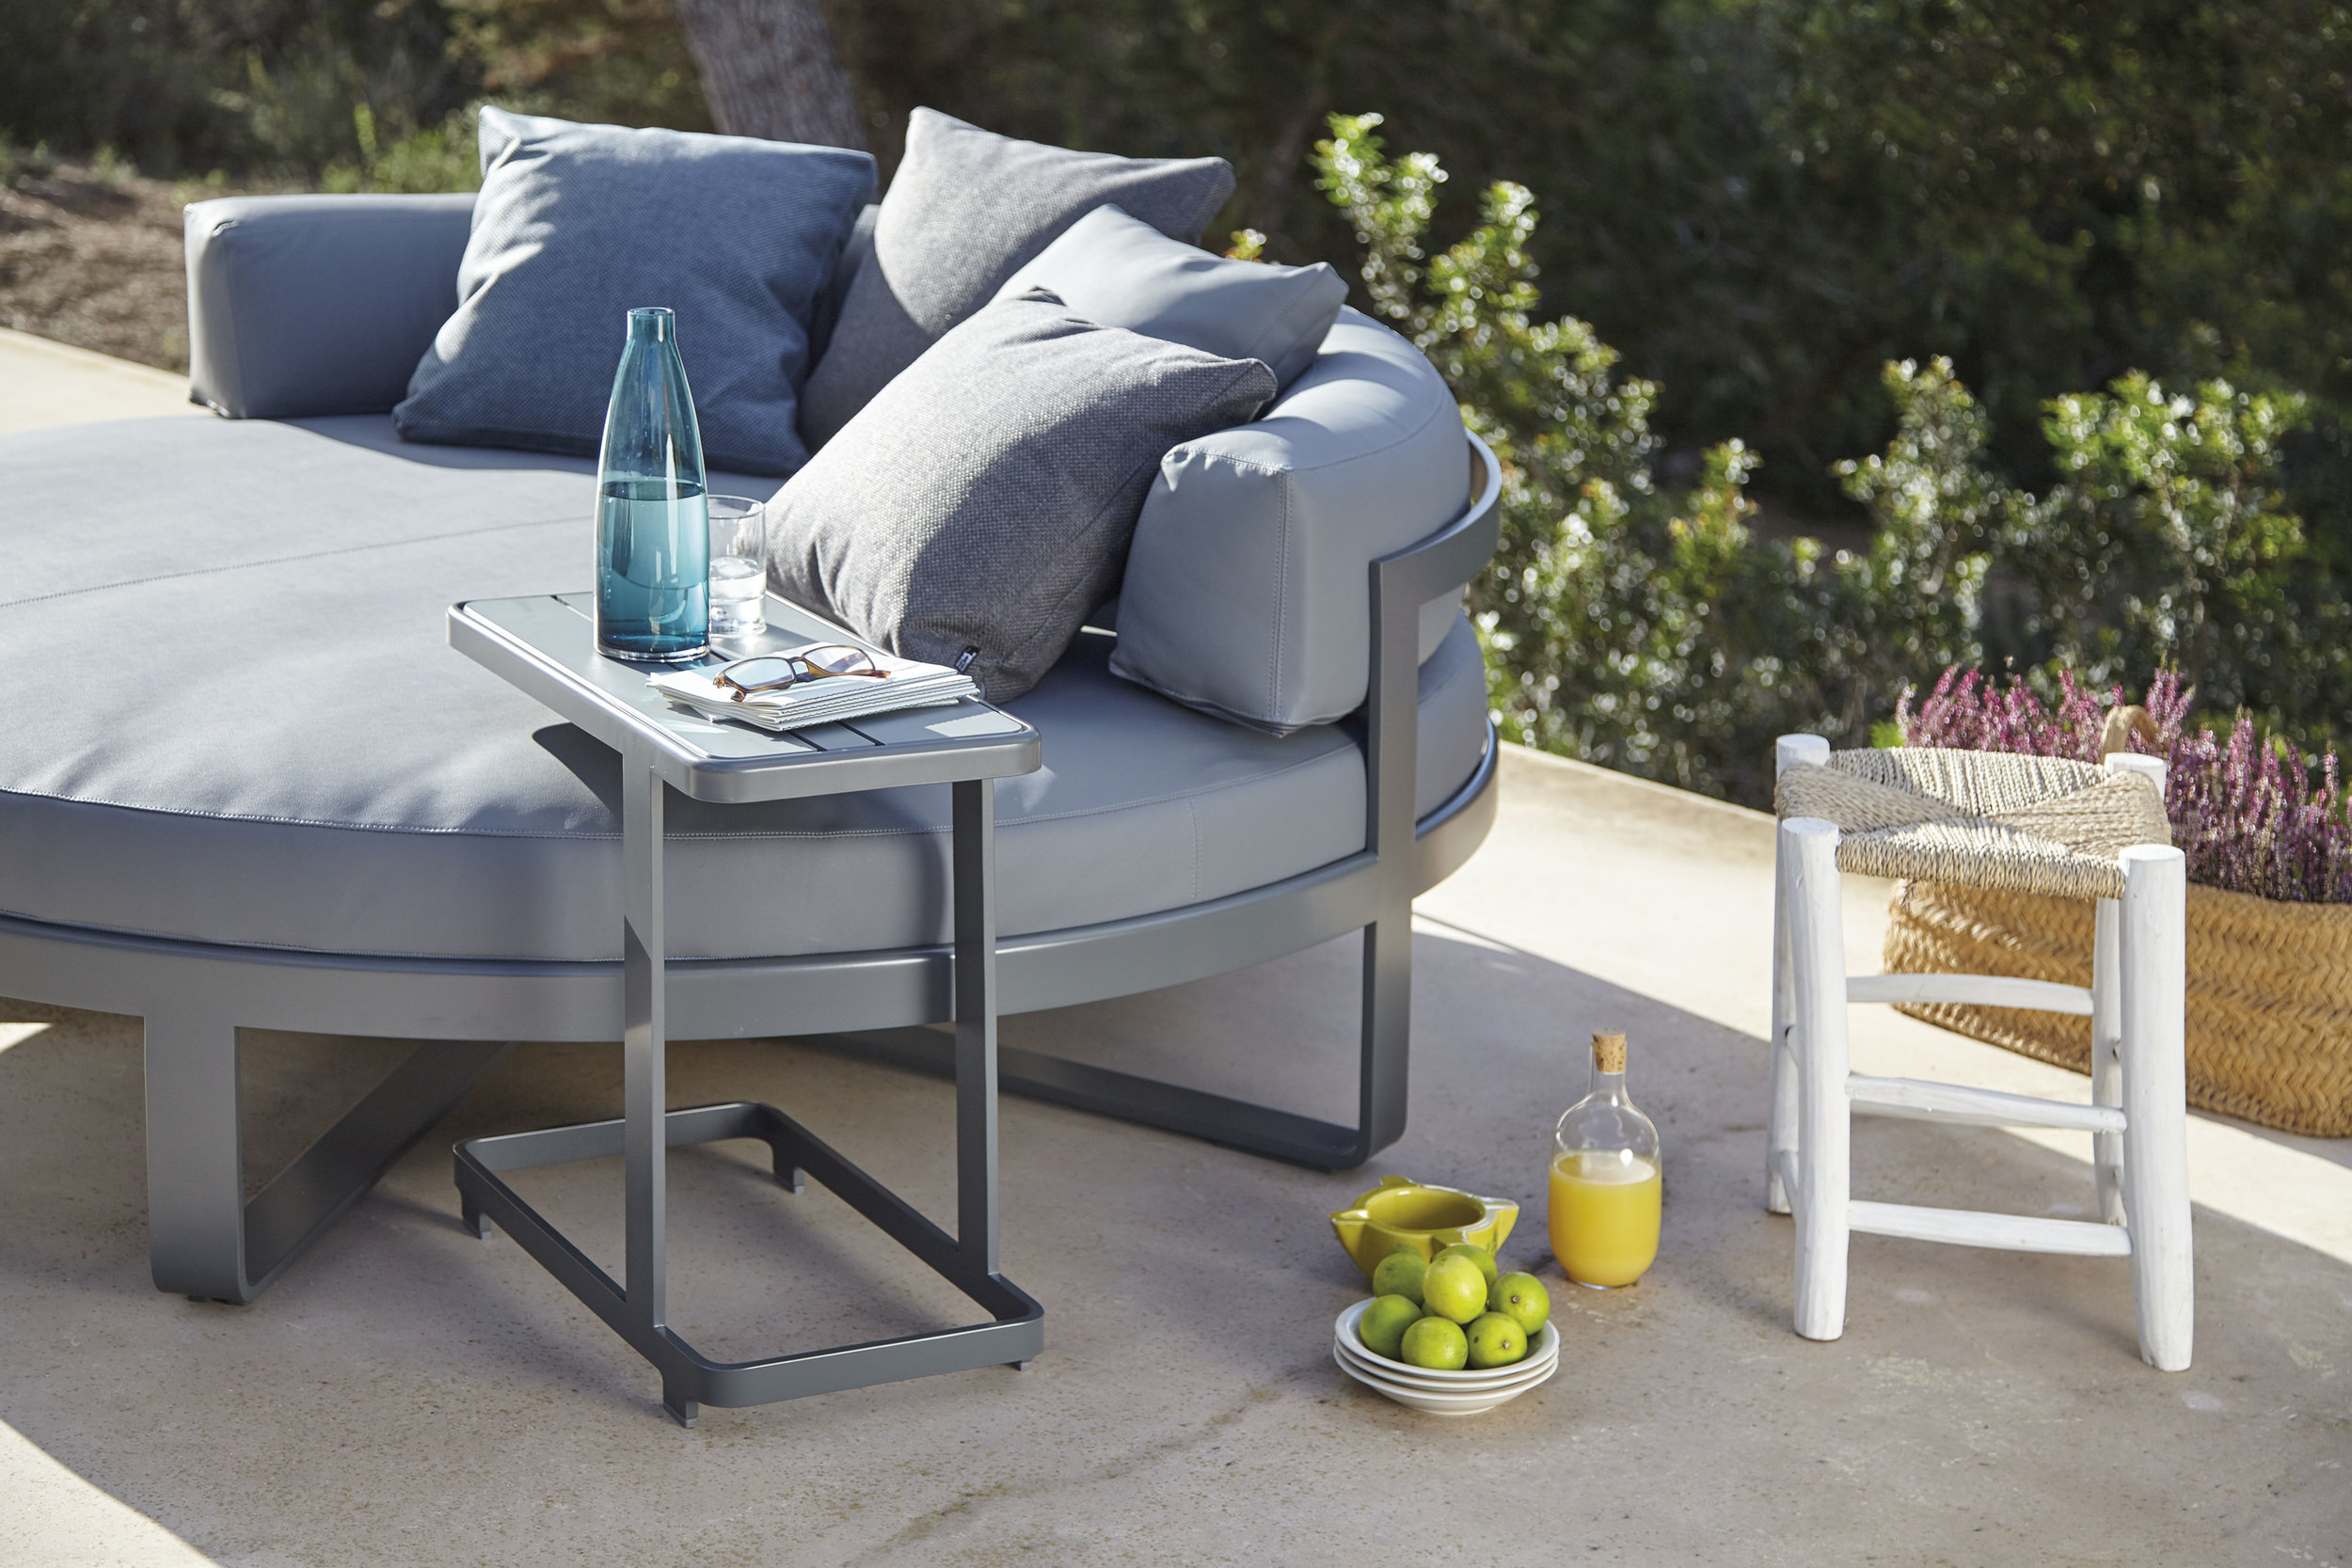 flat-anthracite-circular-chill-bed-and-side-table-ambience-image-2.jpg